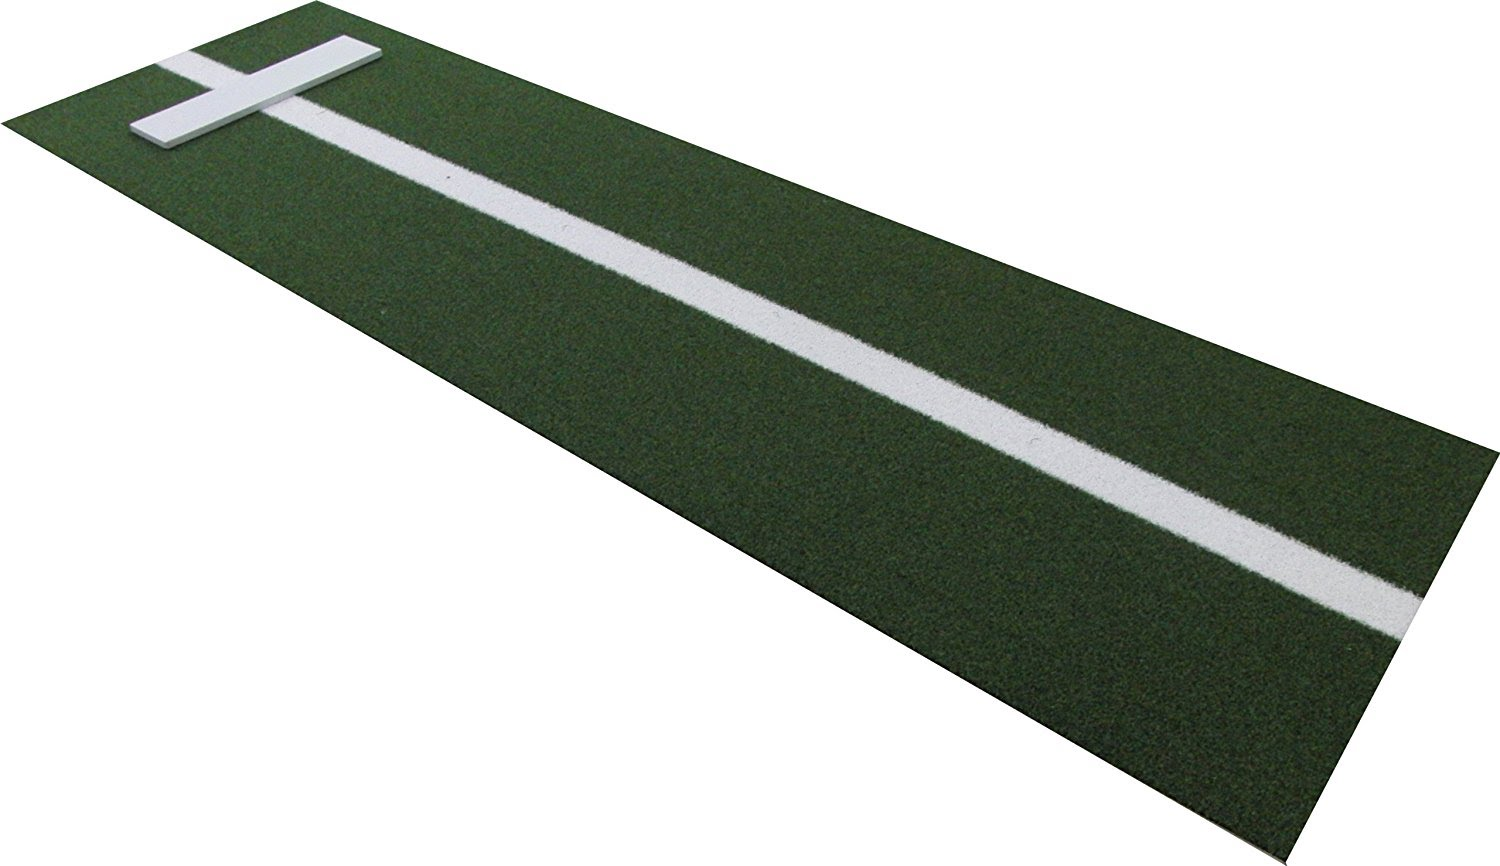 Softball Pitching Mat Lane, 3 X 10'